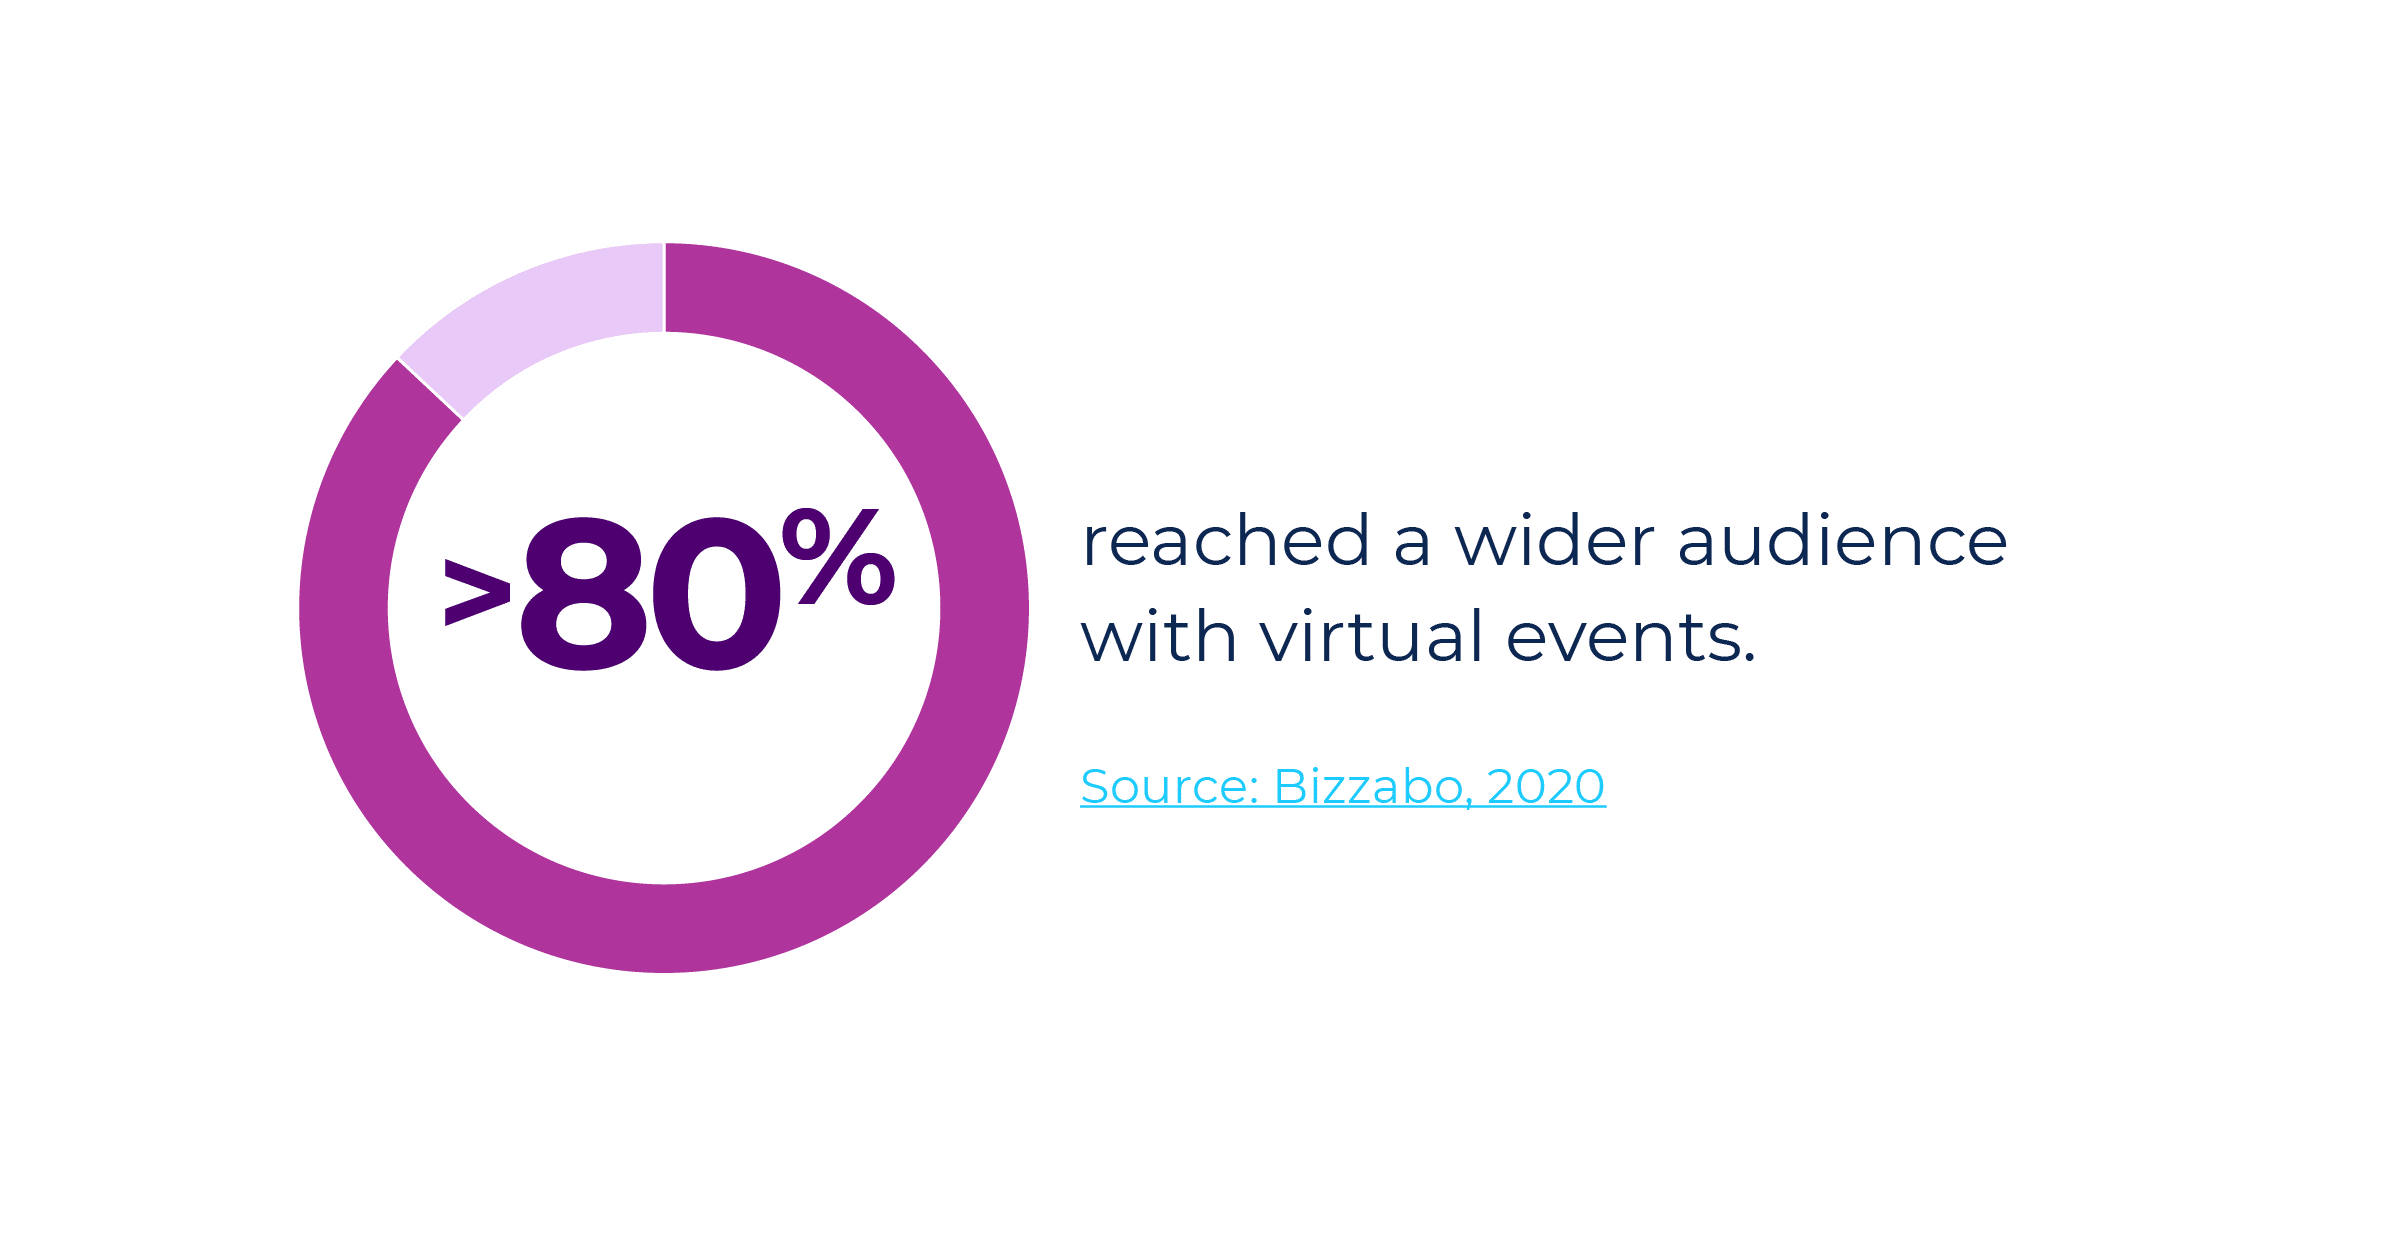 80% of event marketers say they reached a wider audience with virtual events in 2020.